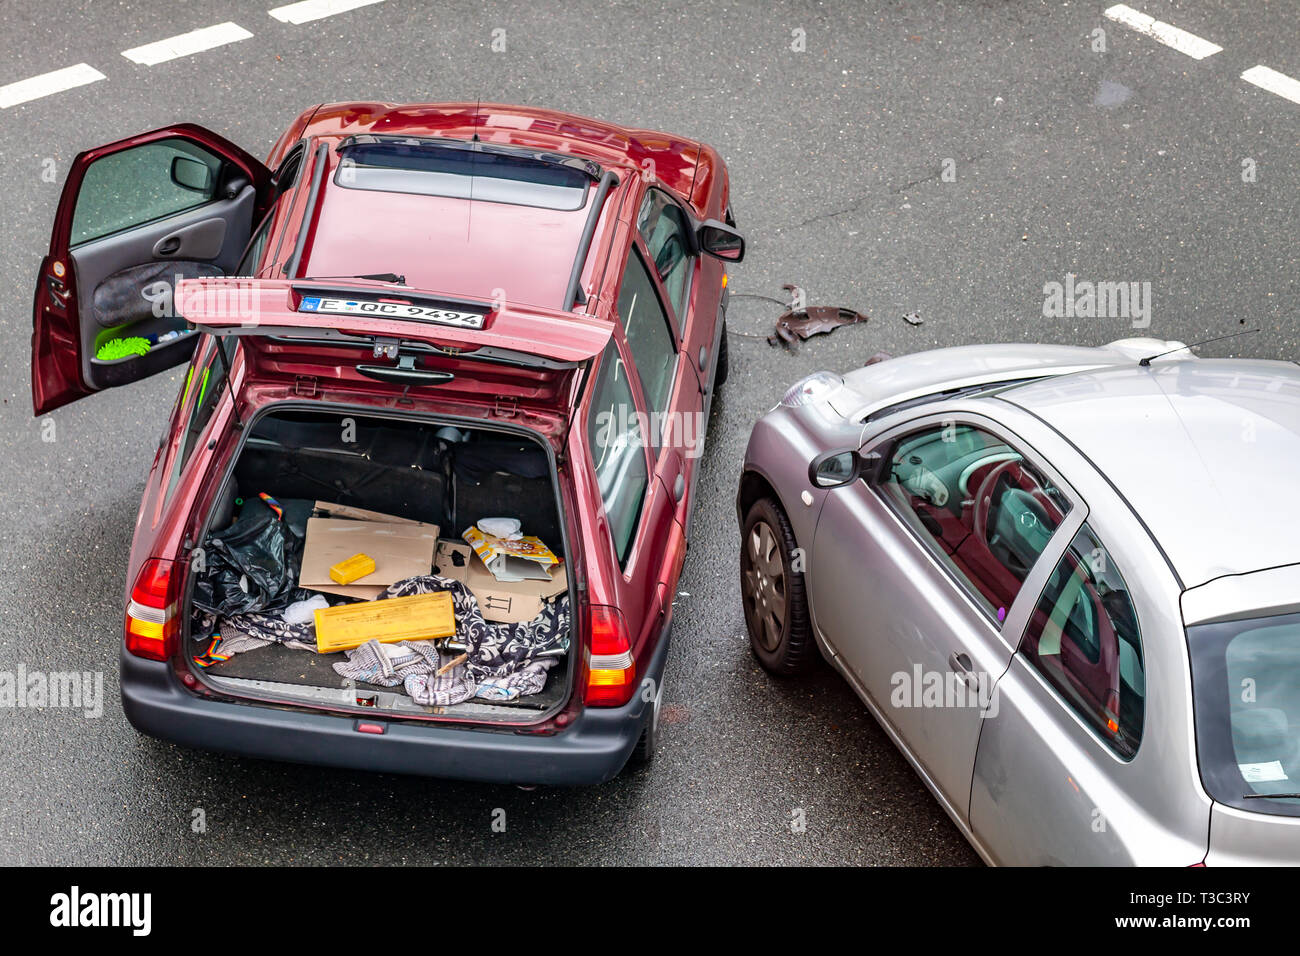 ESSEN / GERMANY - MARCH 19 2019 : Aerial view of car accident on